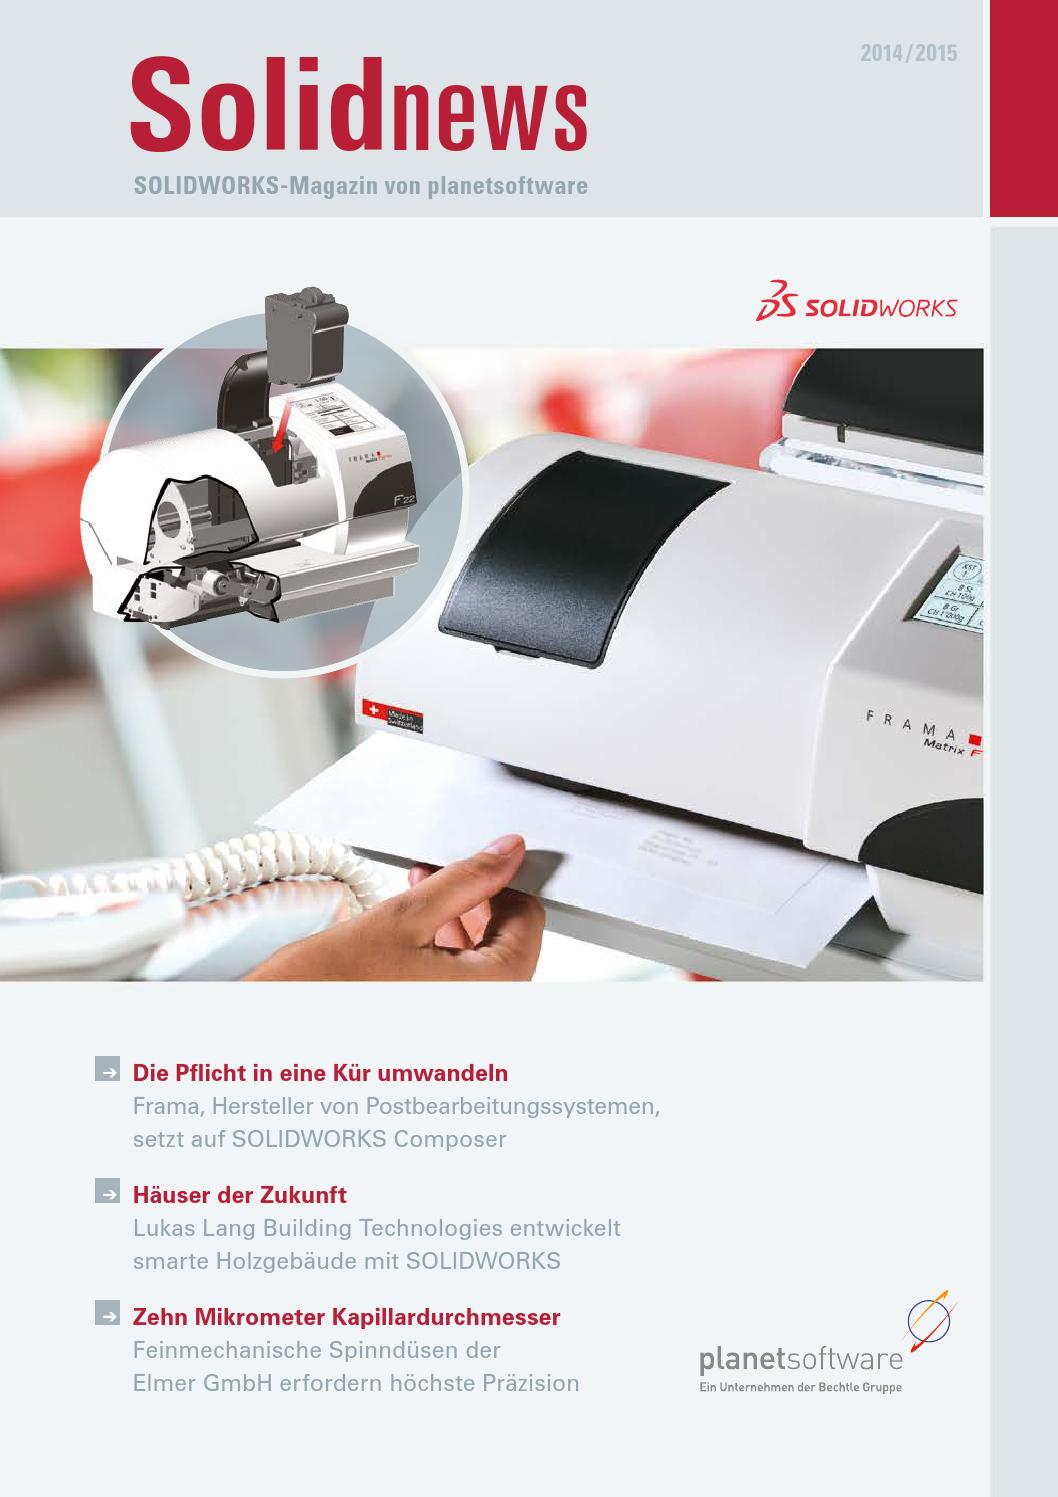 Solidnews 2014 by planetsoftware GmbH - issuu